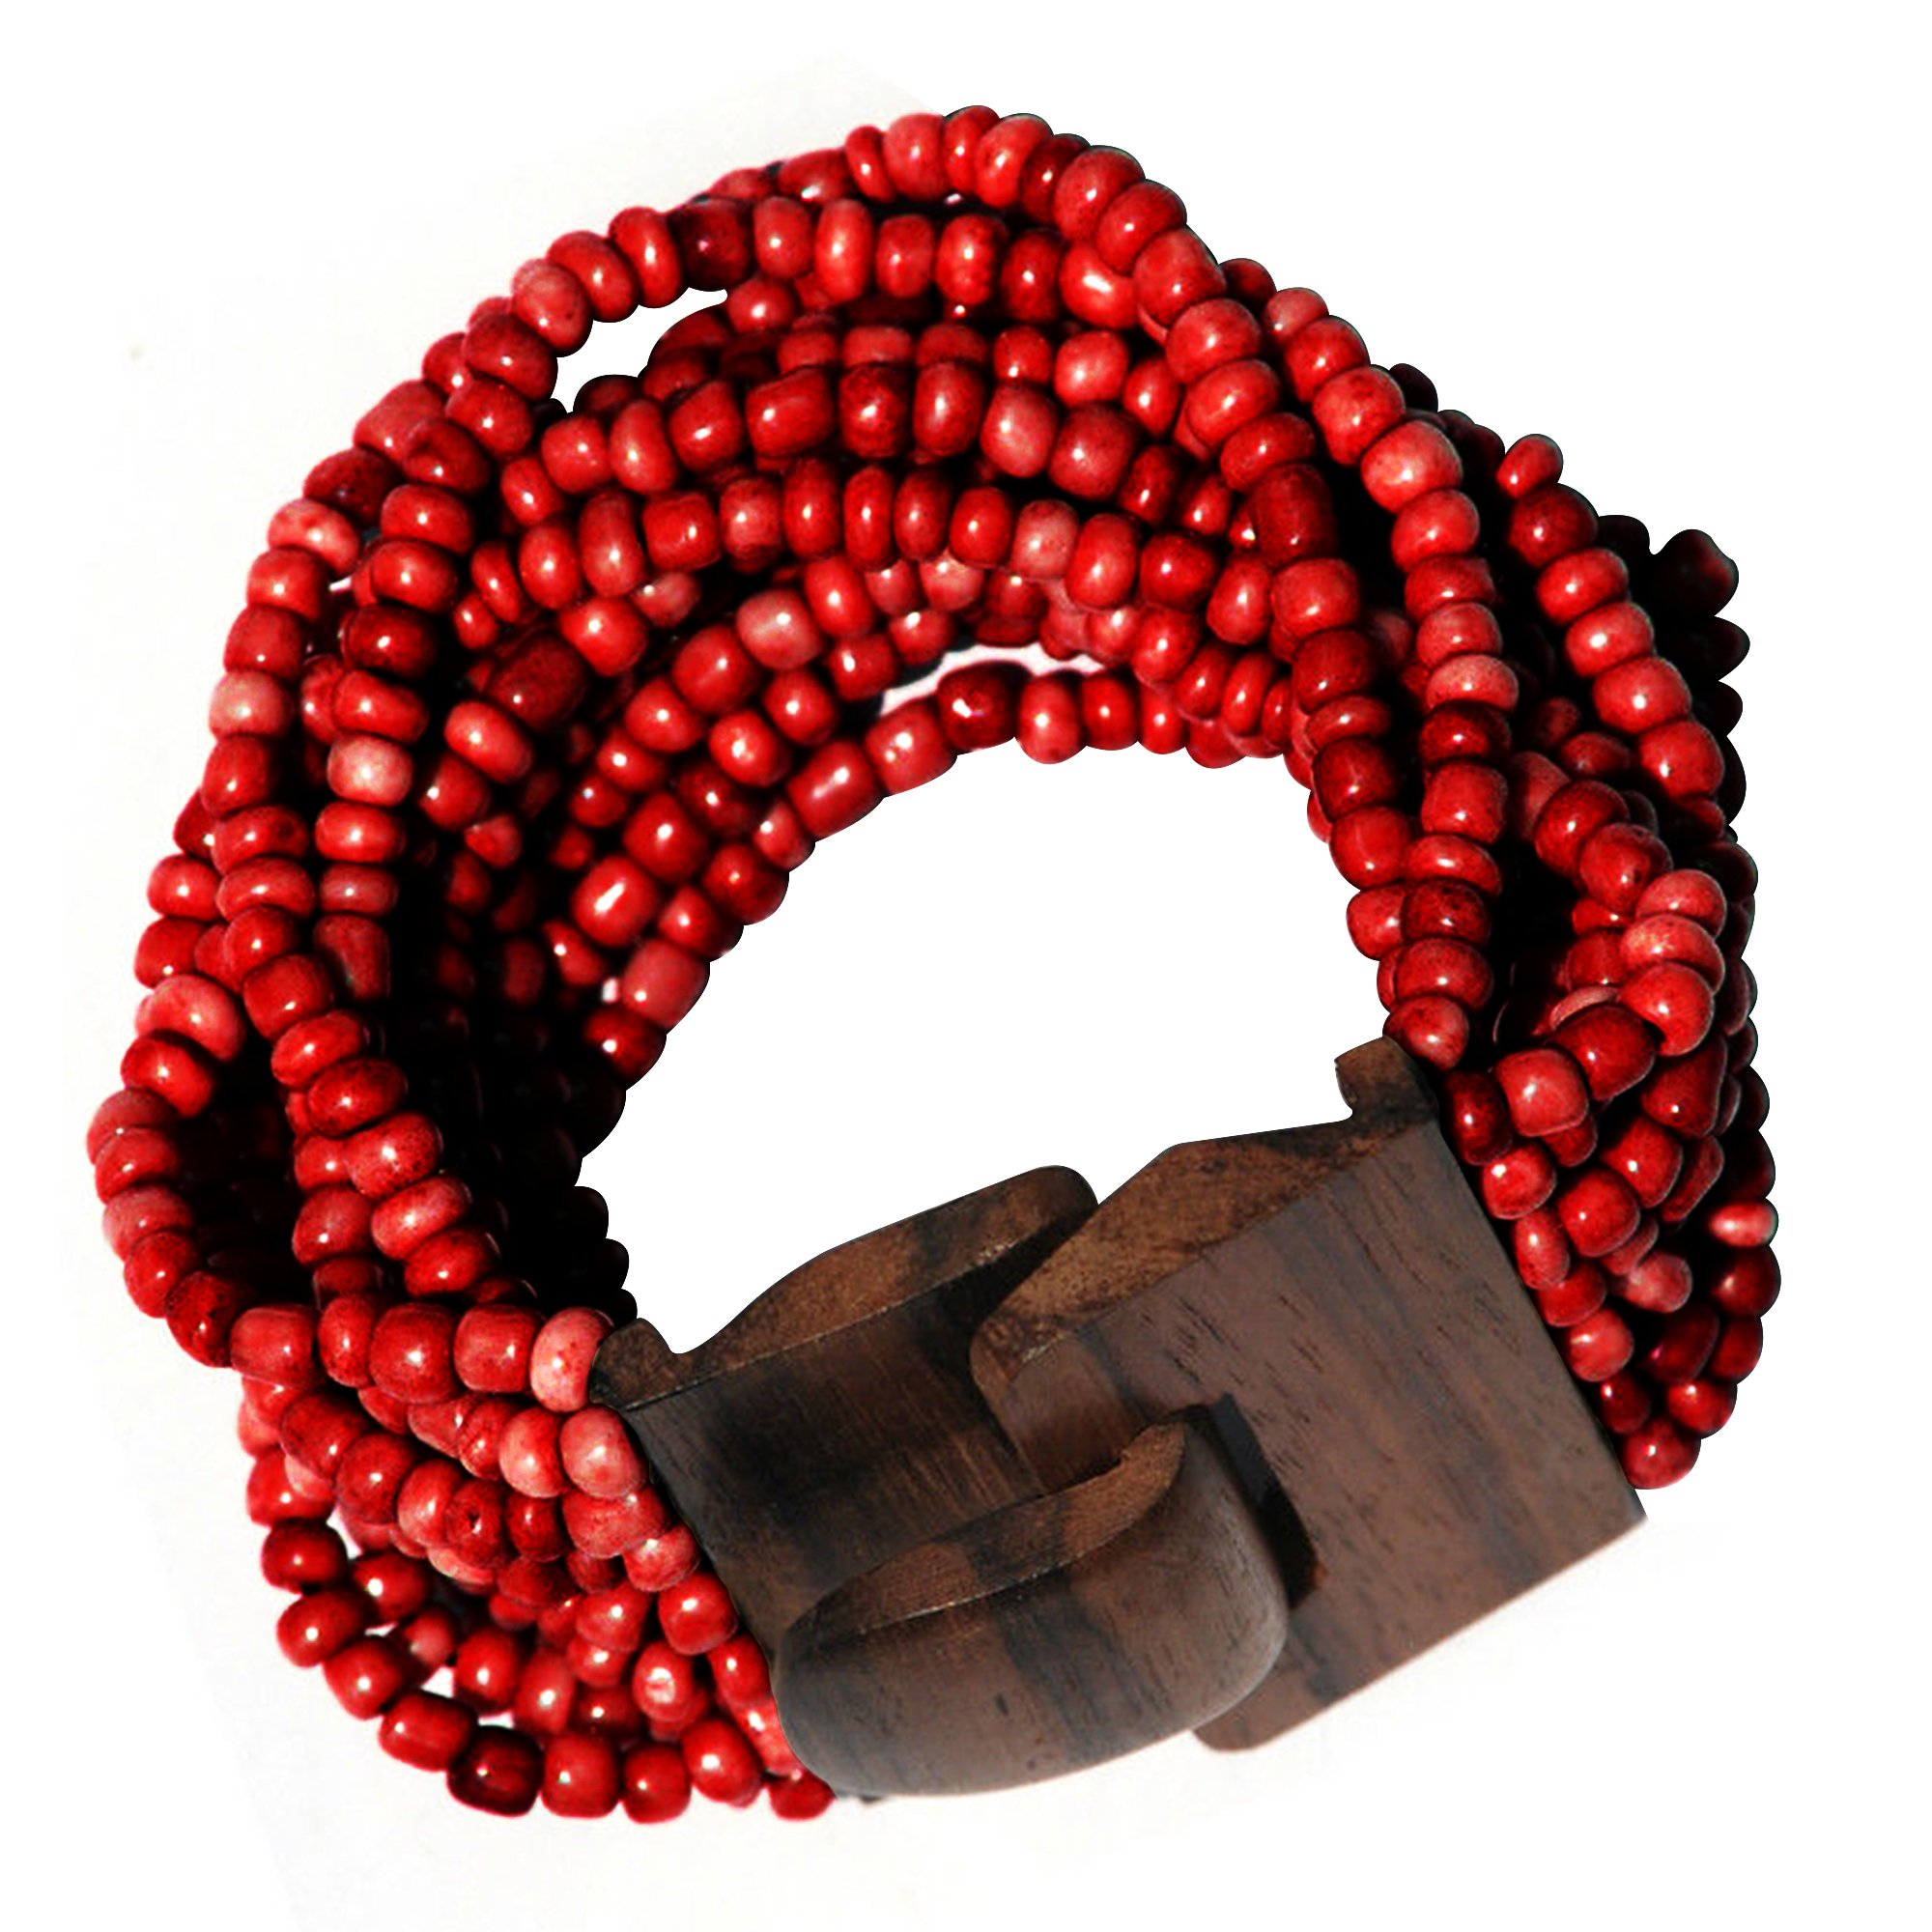 """Maroon 14 Strand Elastic Stretchy Glass Beaded Bracelet With Wooden Buckle Clasp – 2"""" Wide"""